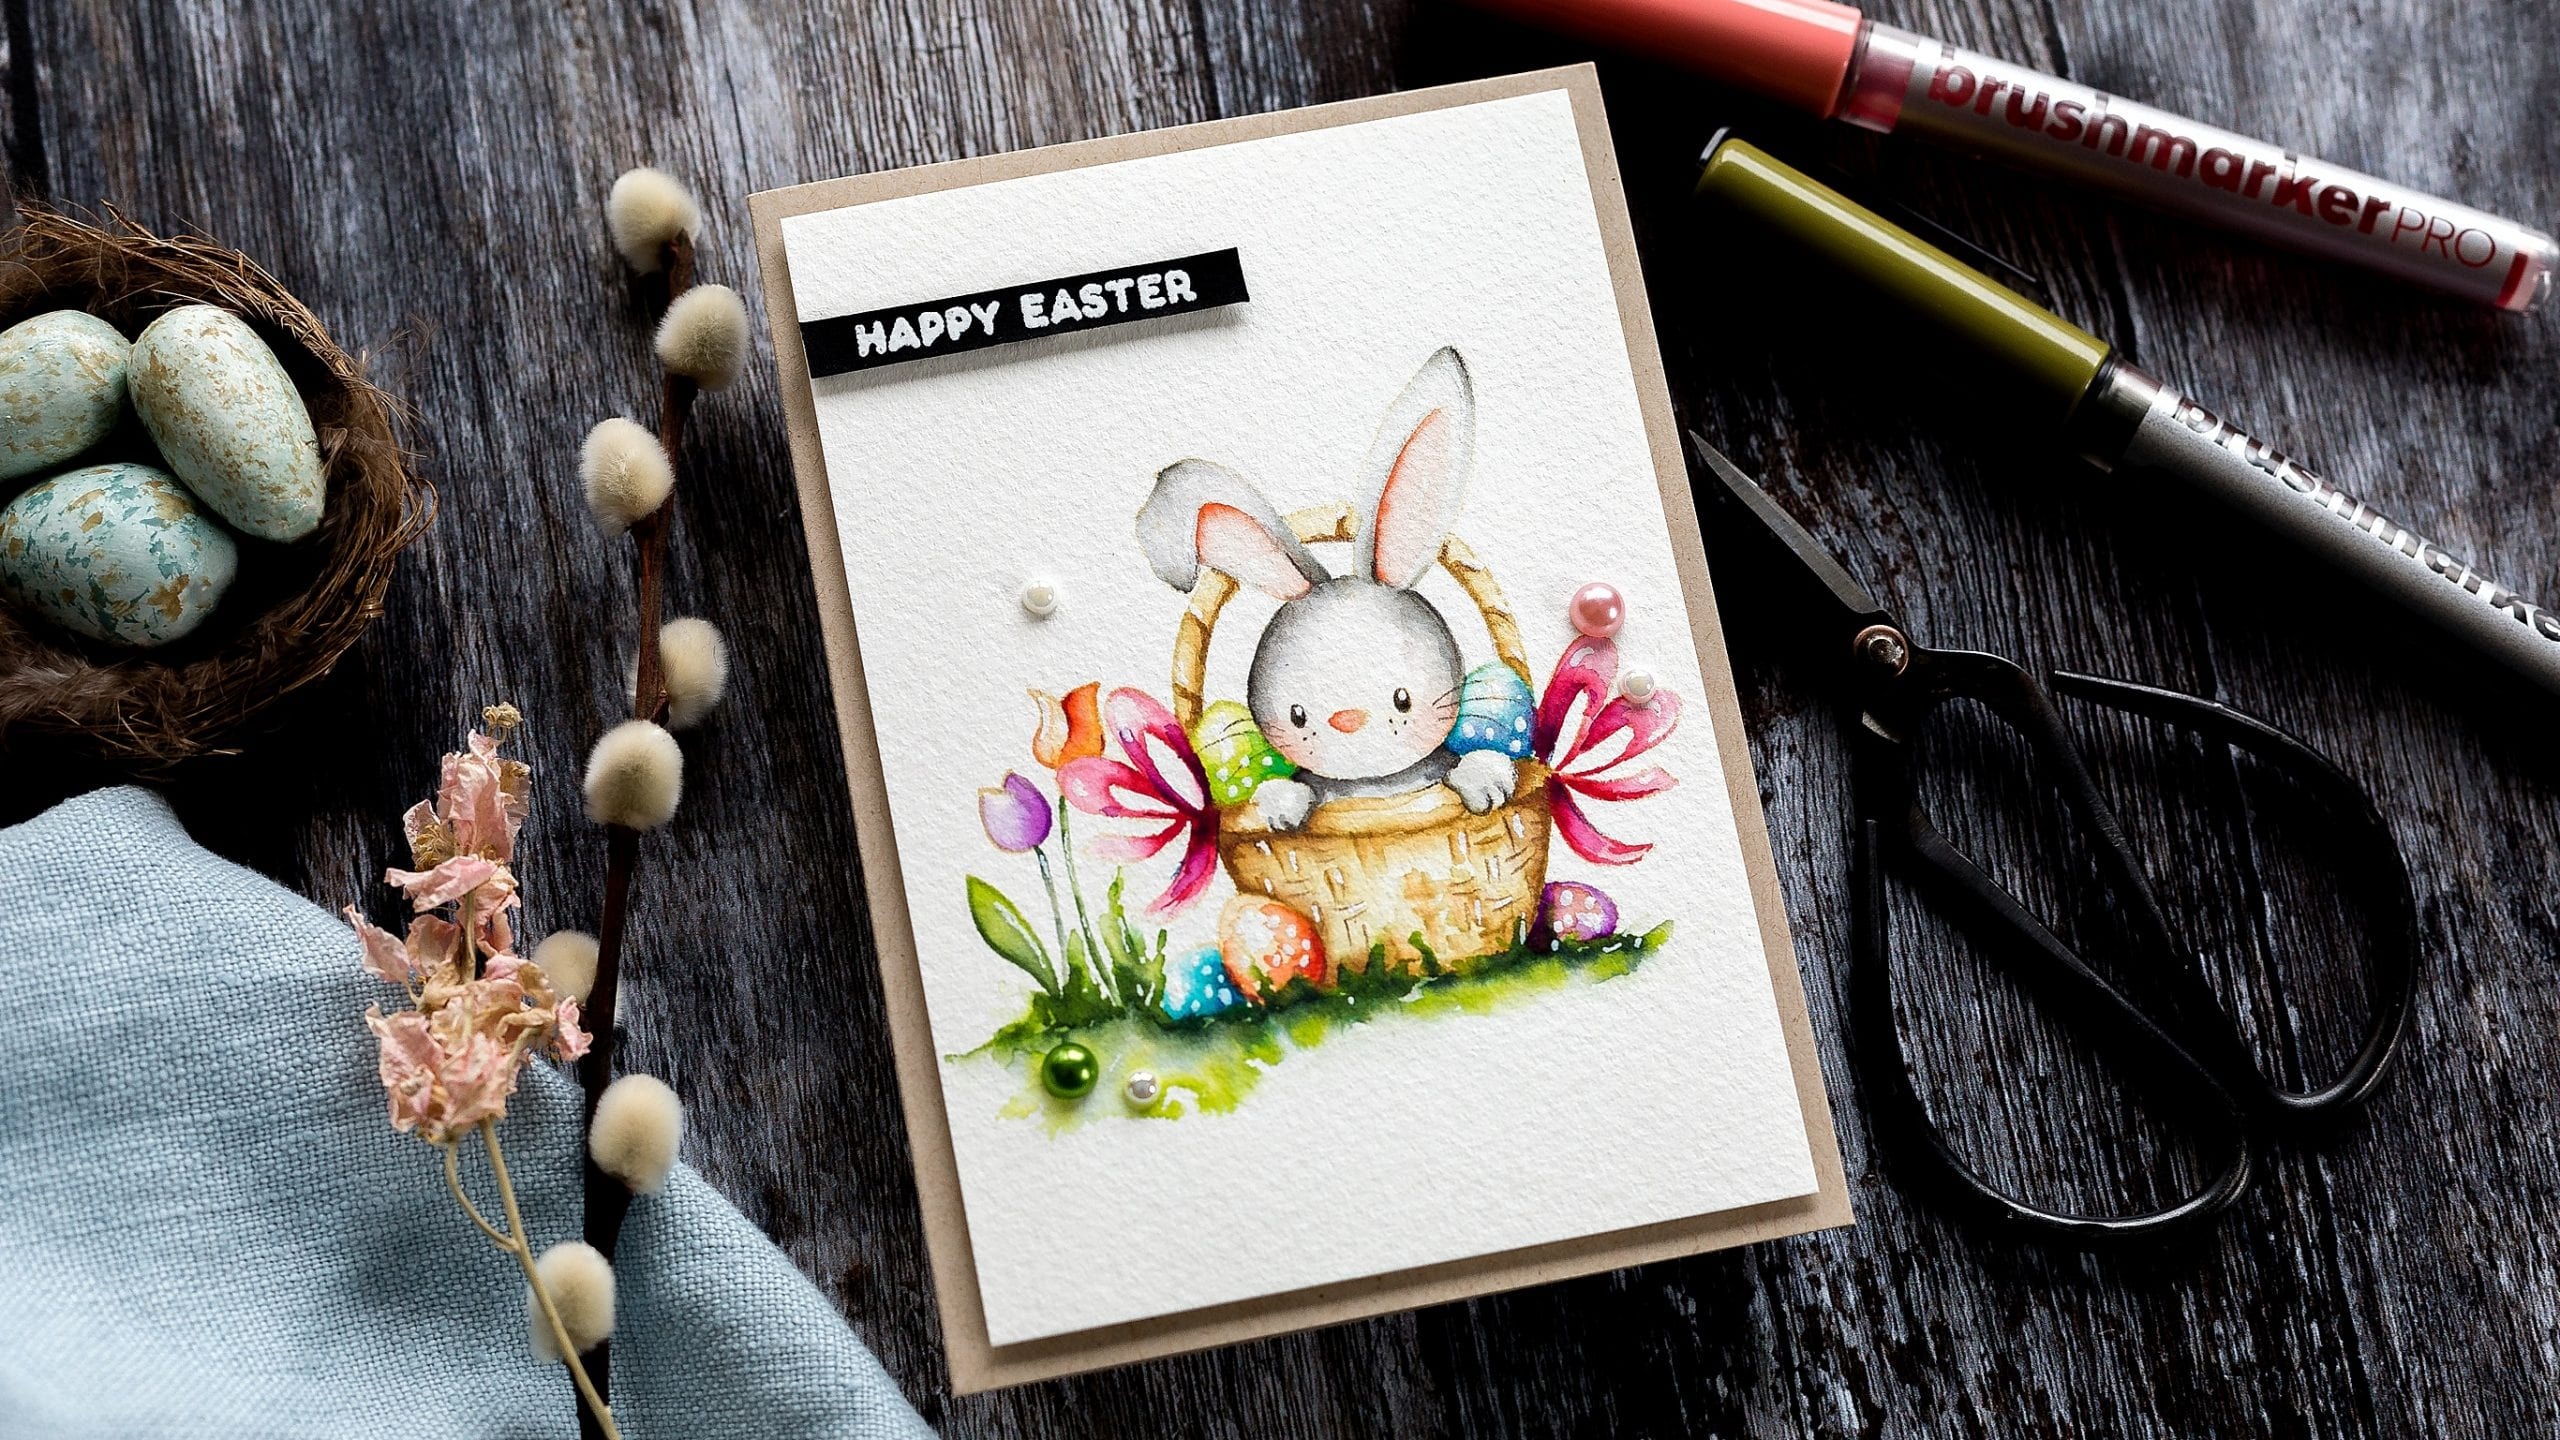 Video tutorial Karin Brushmarker Pro pens and Fabriano Artistico Extra White Cold-Pressed watercolour card review watercolouring a cute handmade Easter rabbit in a basket card by Debby Hughes #watercolor #tutorial #homemade